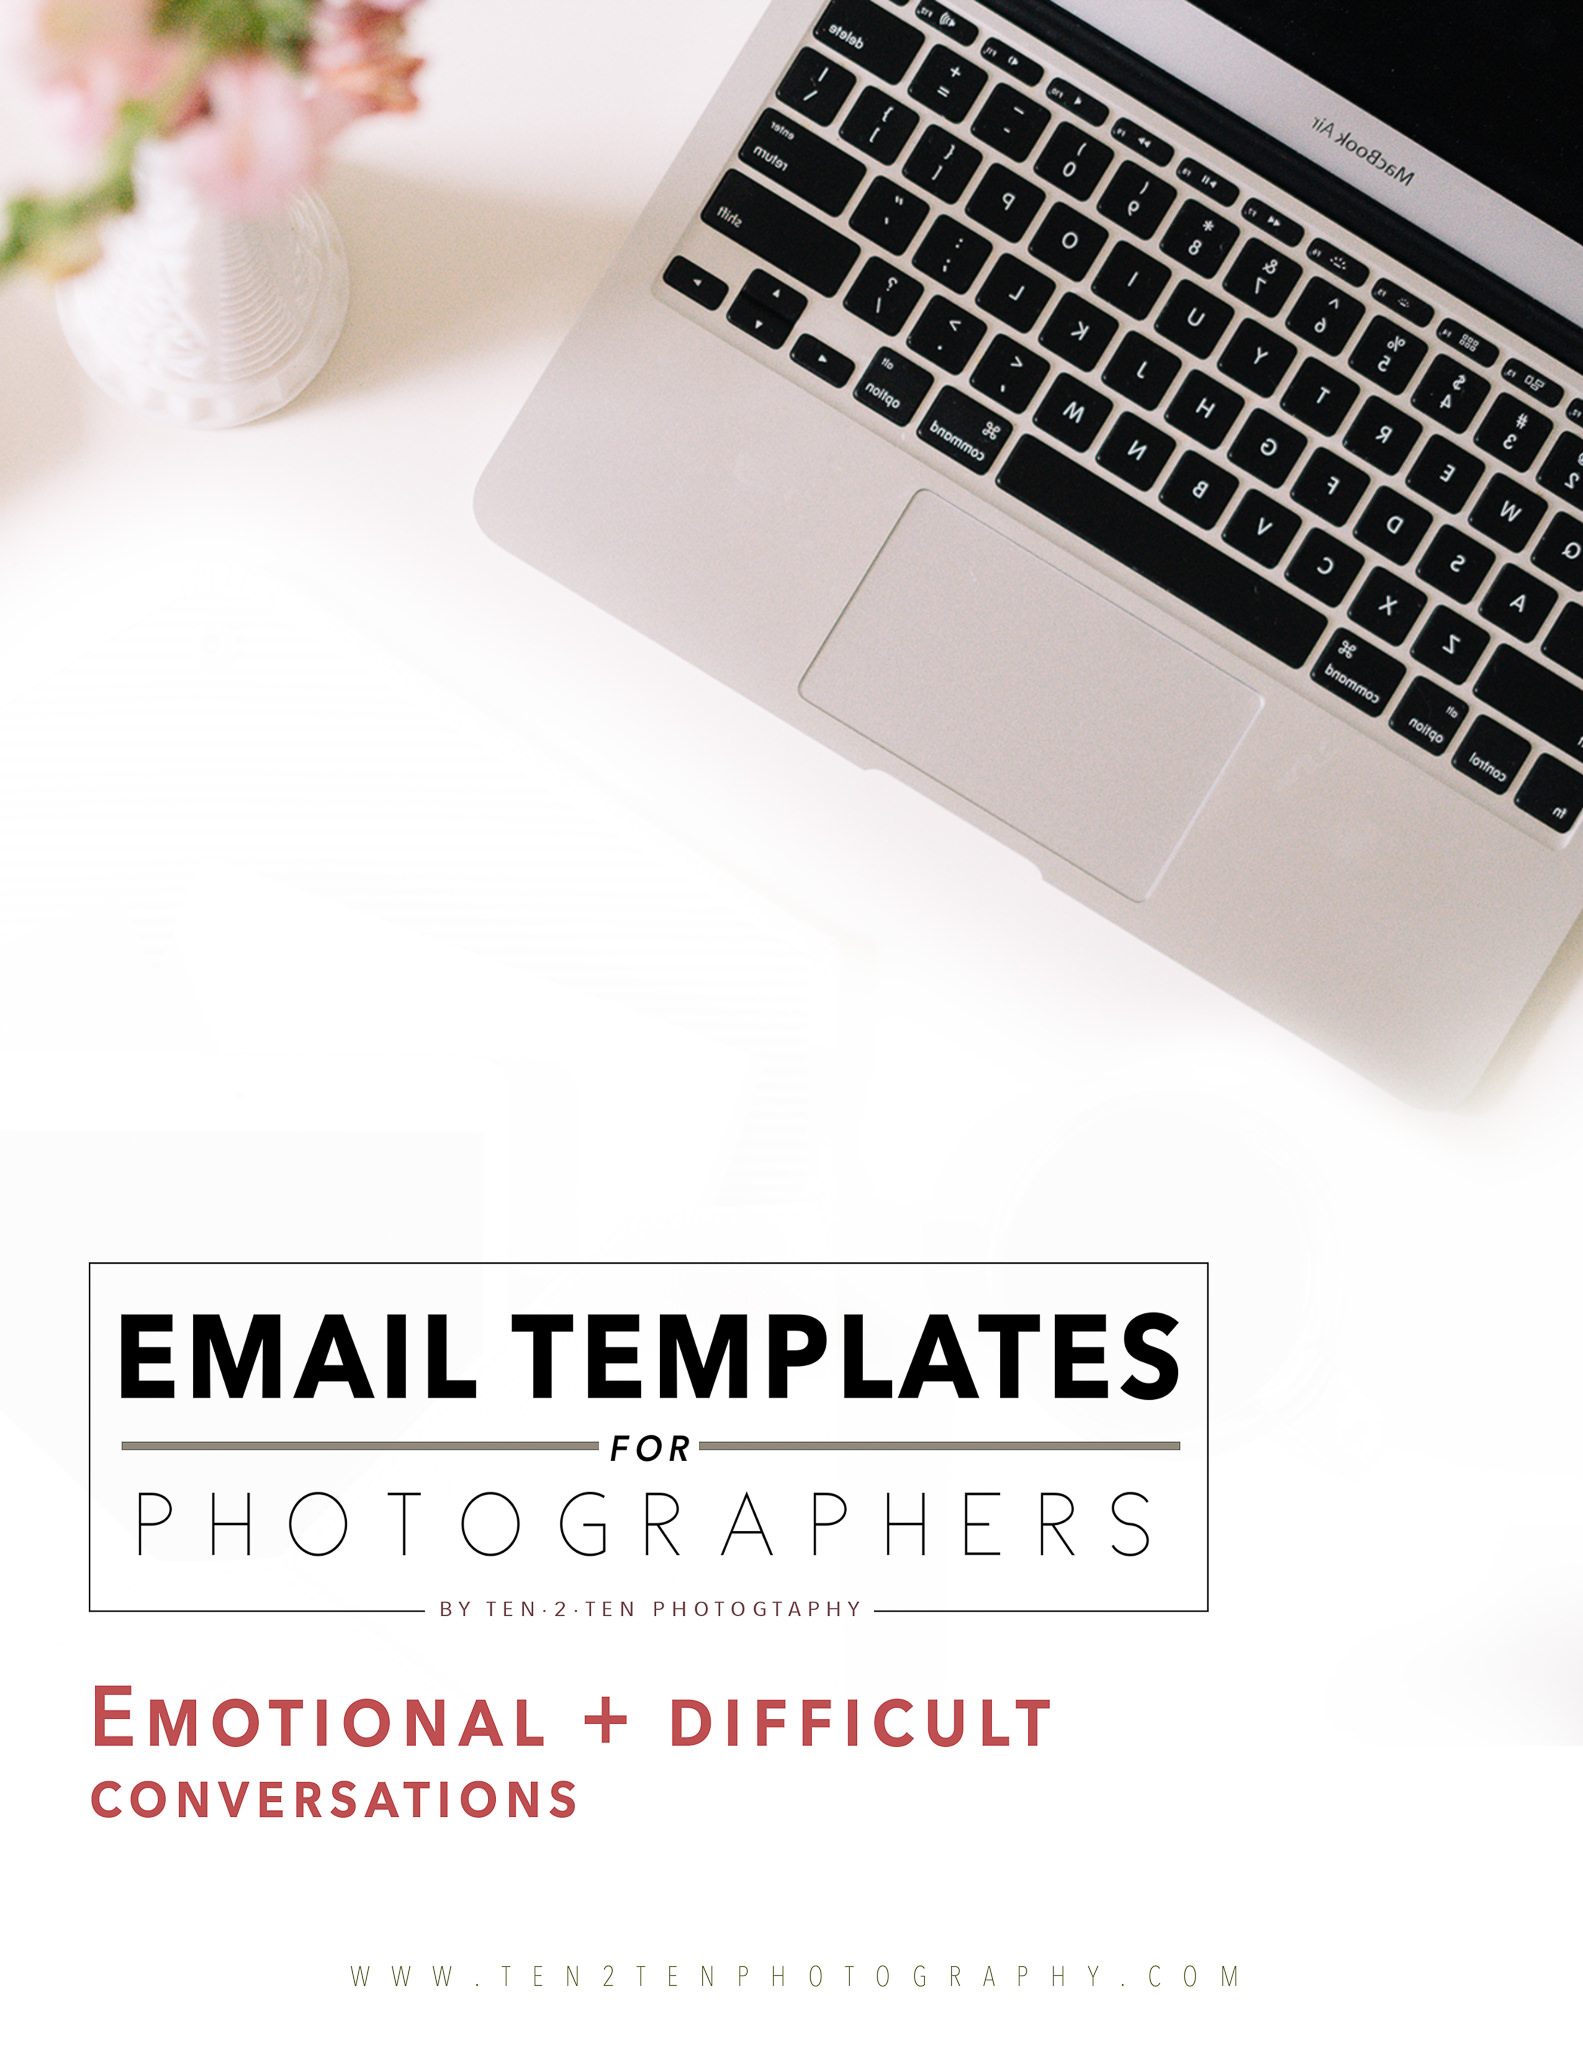 email templates for photographers 10 - Email Templates for Photographers - Managing Inquiries + Initial Contacts